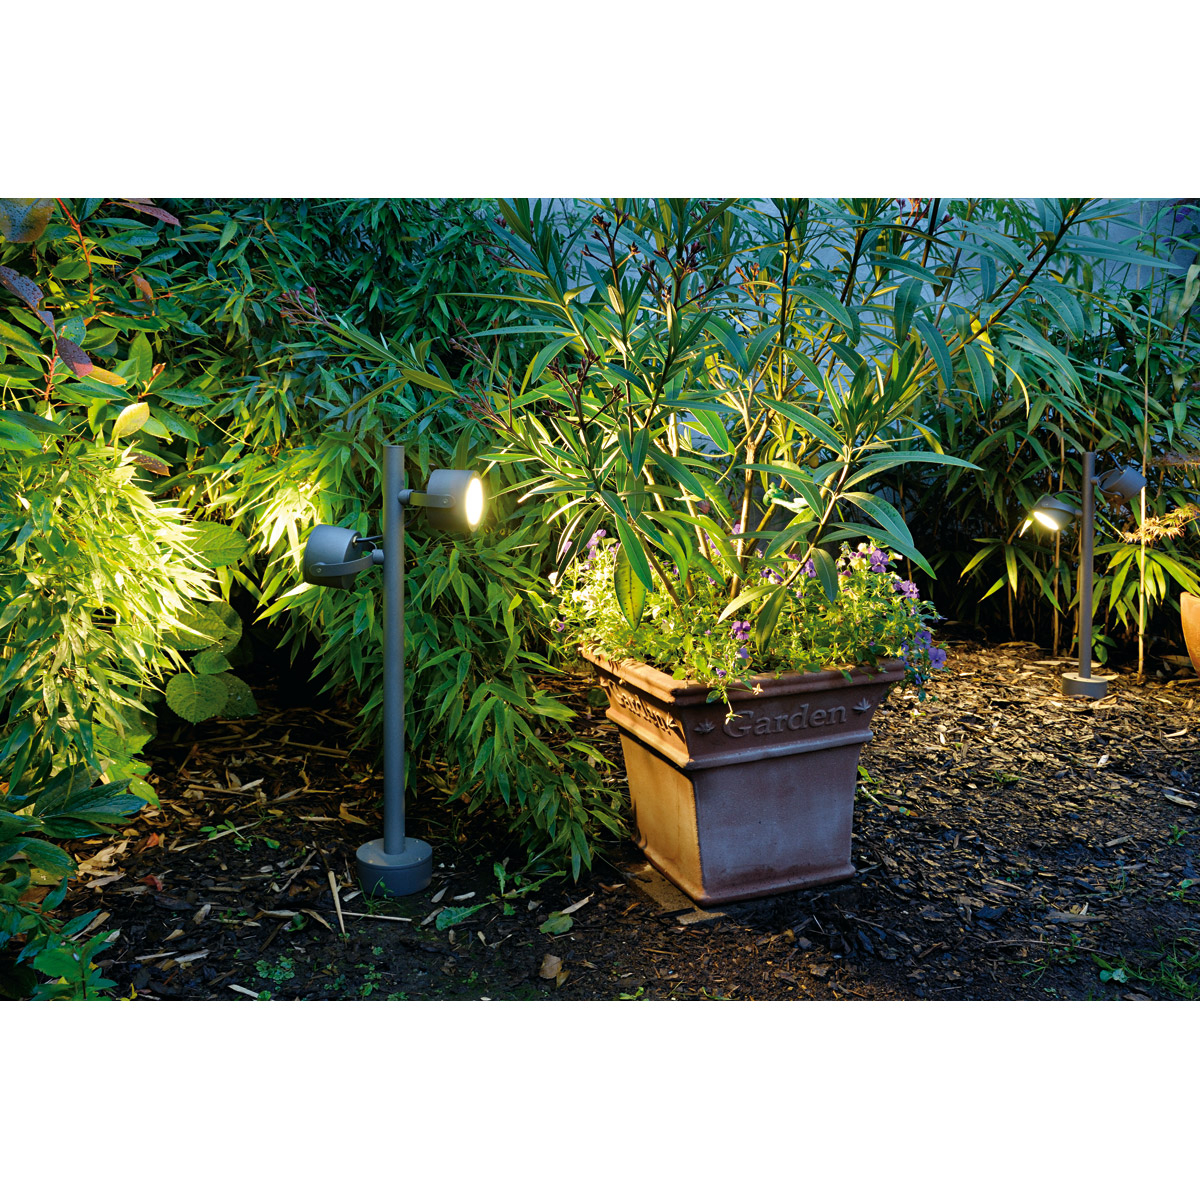 slv 231504 sitra 360 sl aussenleuchte steingrau gx53. Black Bedroom Furniture Sets. Home Design Ideas